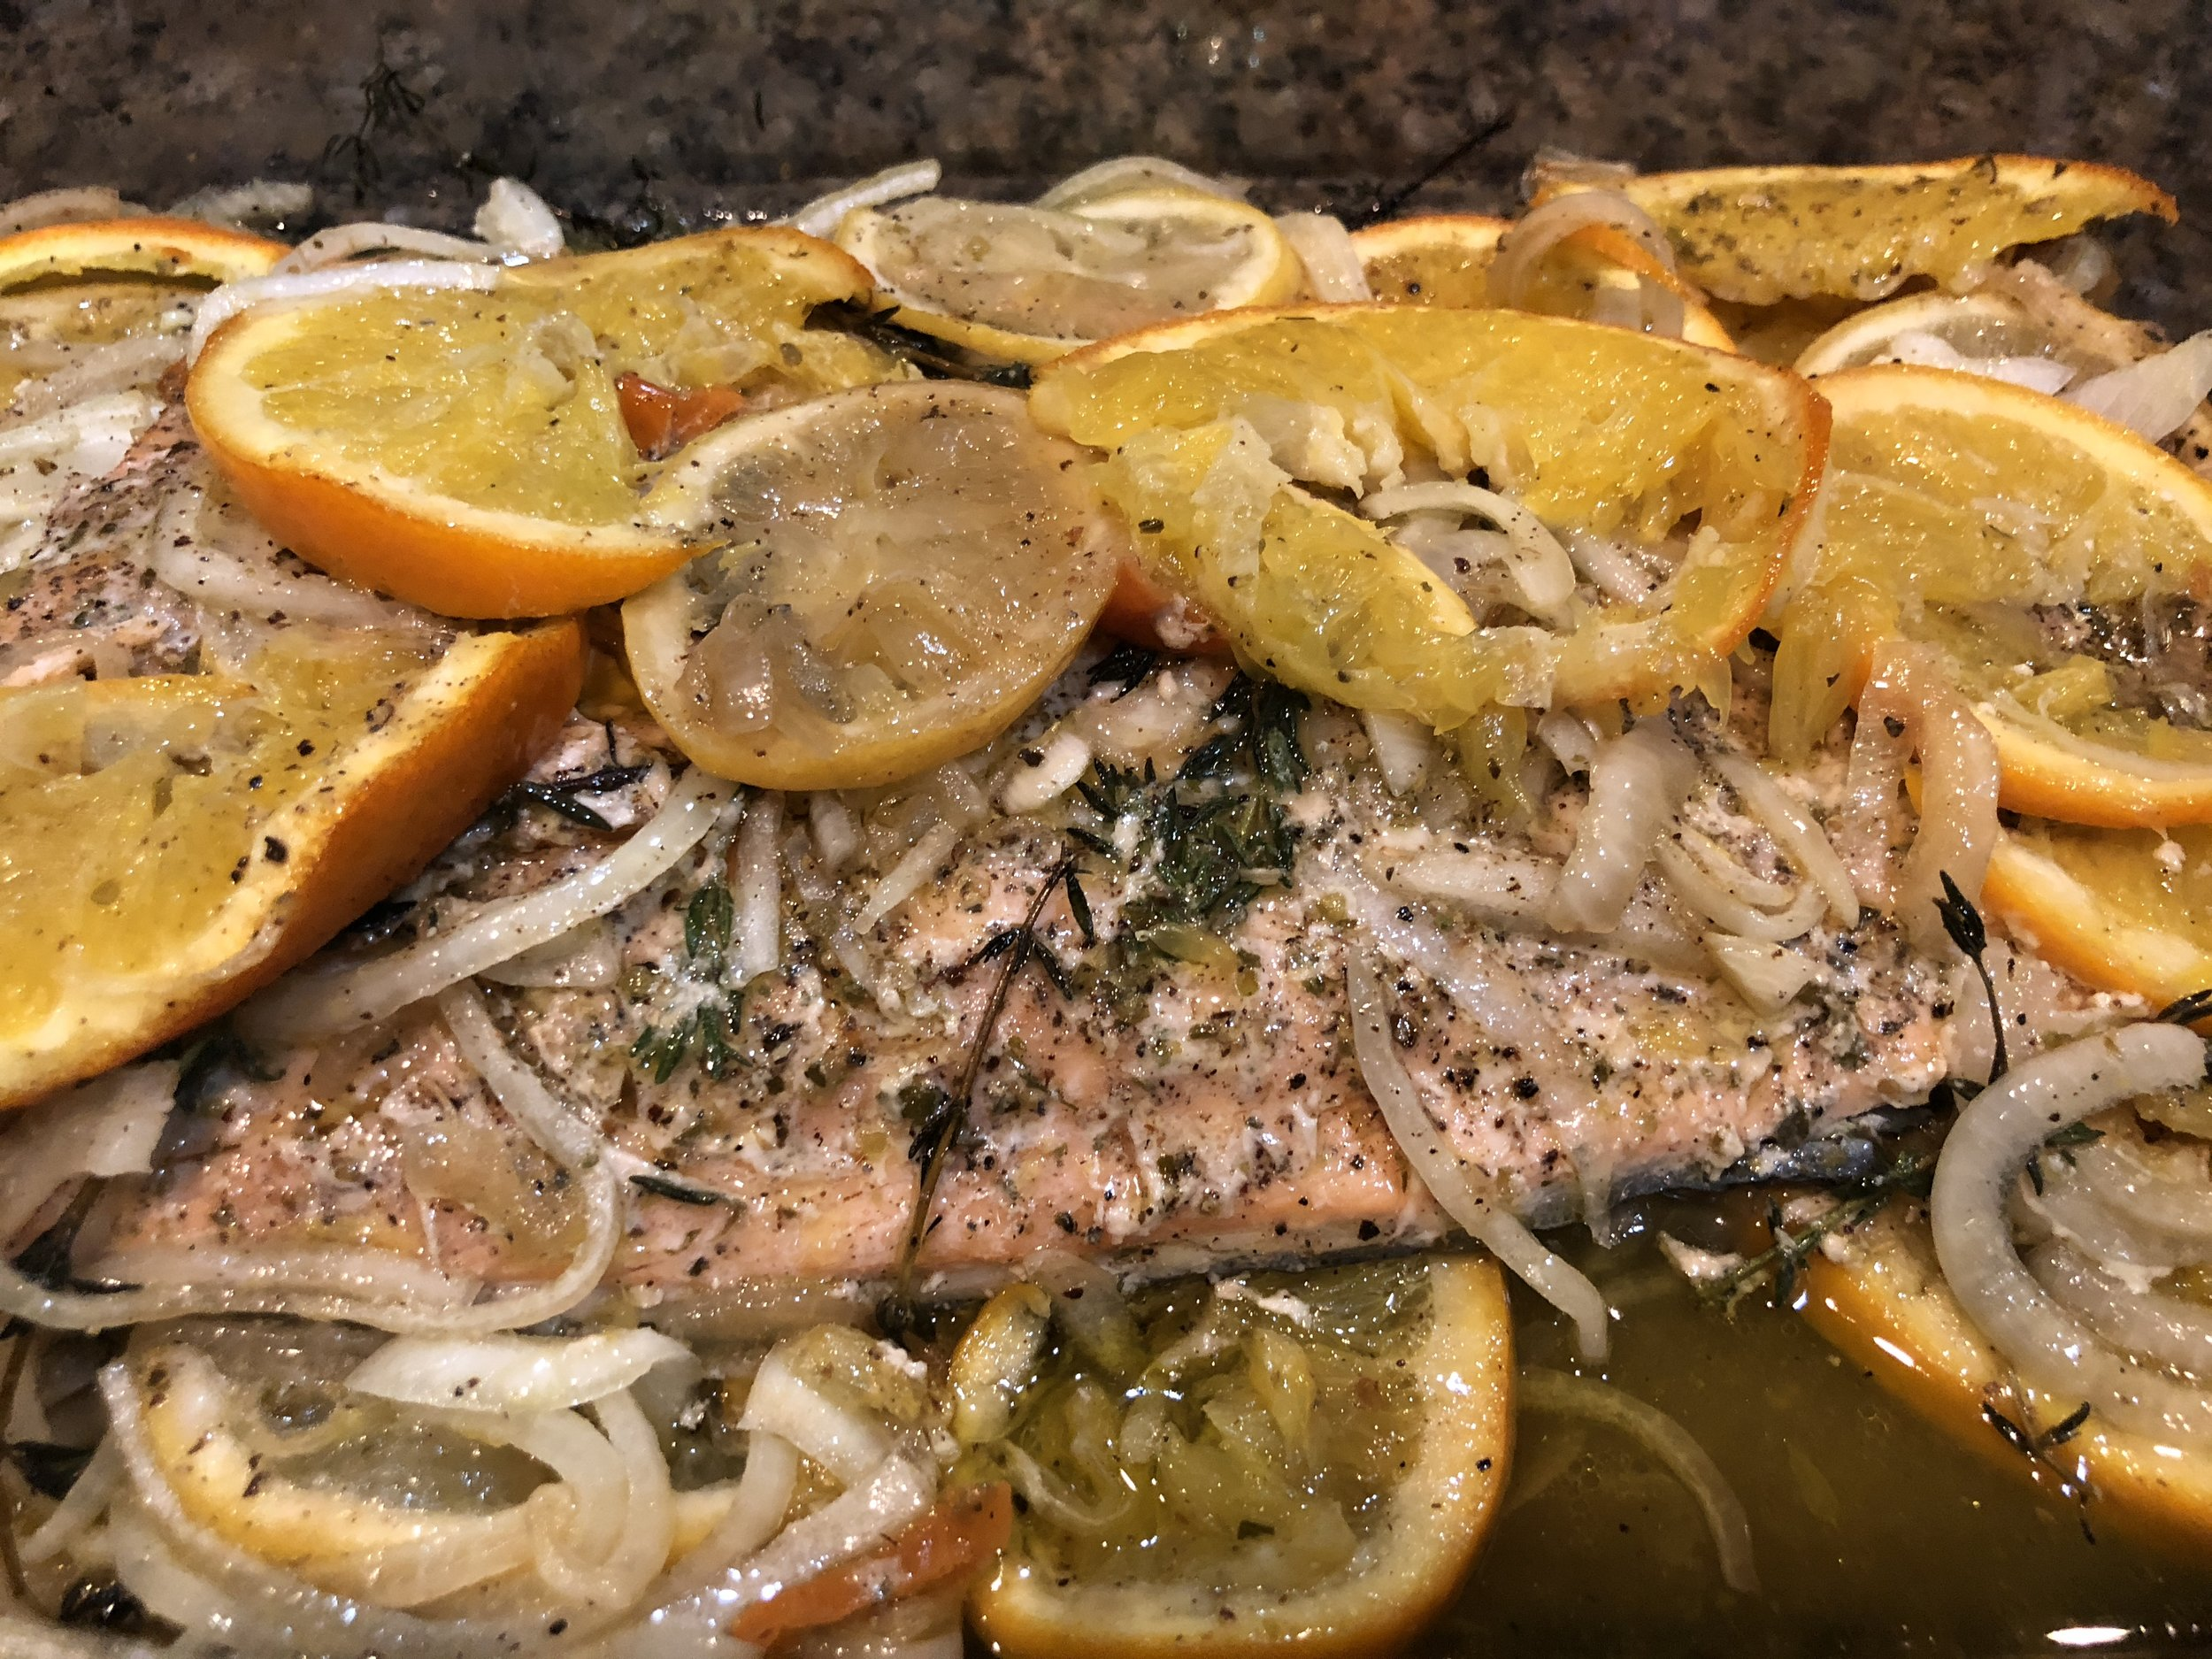 Slow roasted Salmon with citrus and chiles